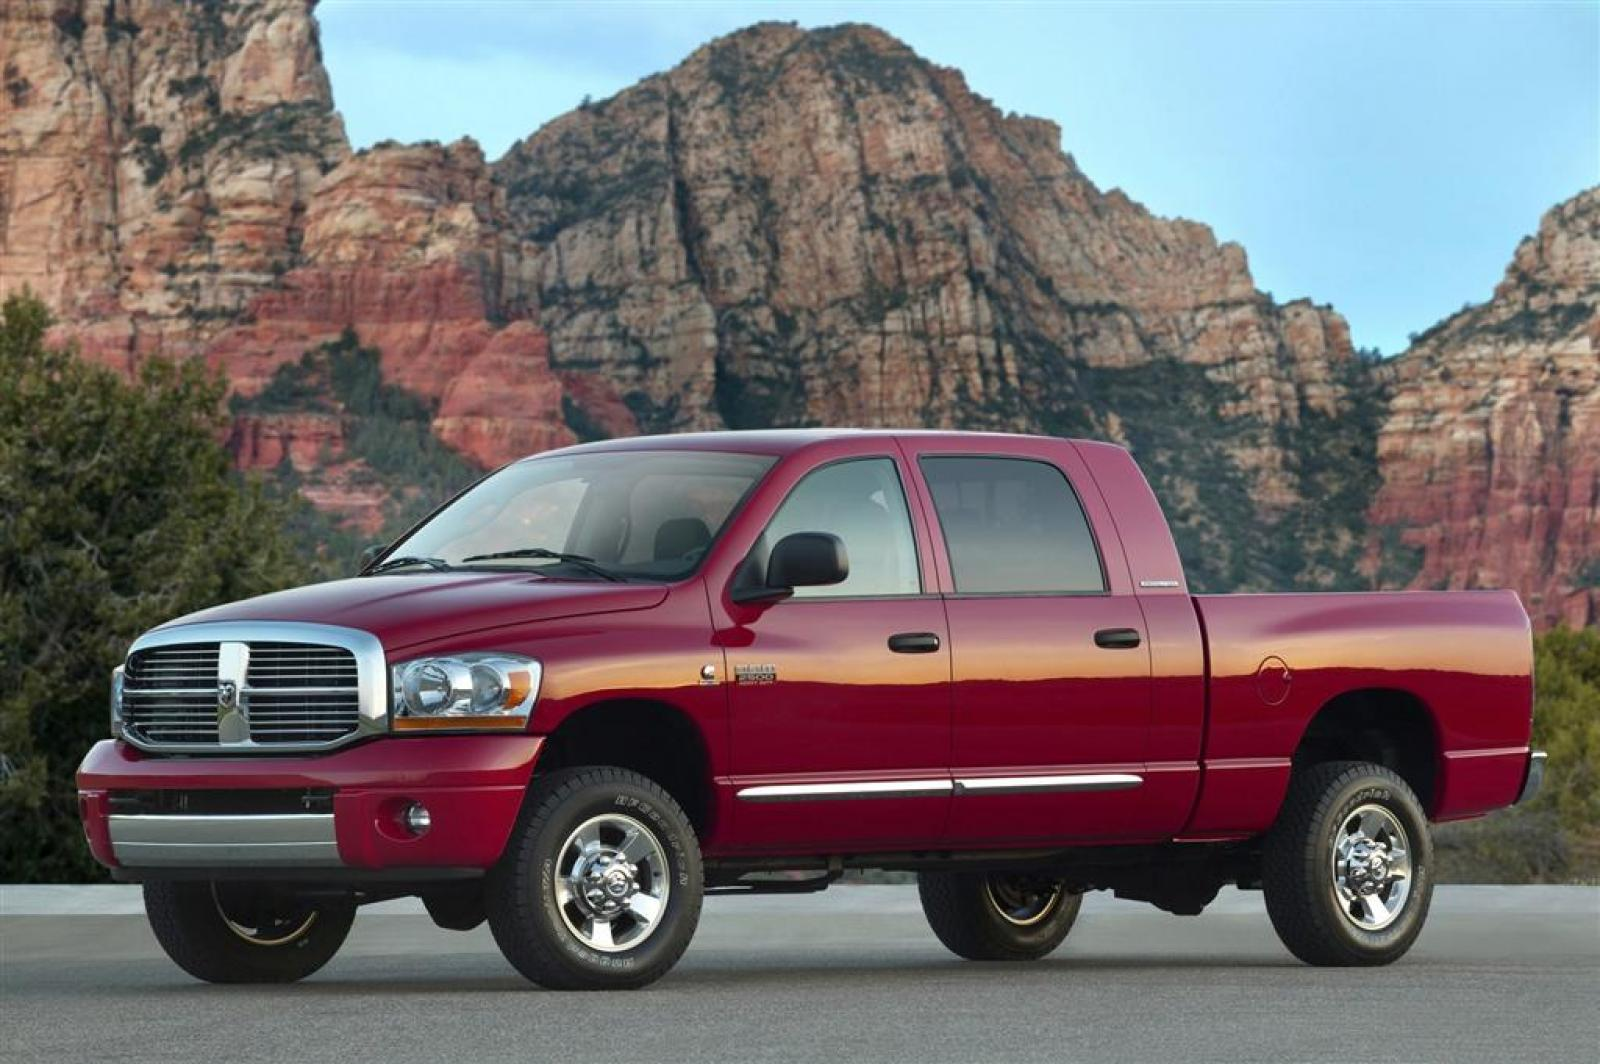 2009 dodge ram pickup 2500 information and photos zombiedrive. Black Bedroom Furniture Sets. Home Design Ideas